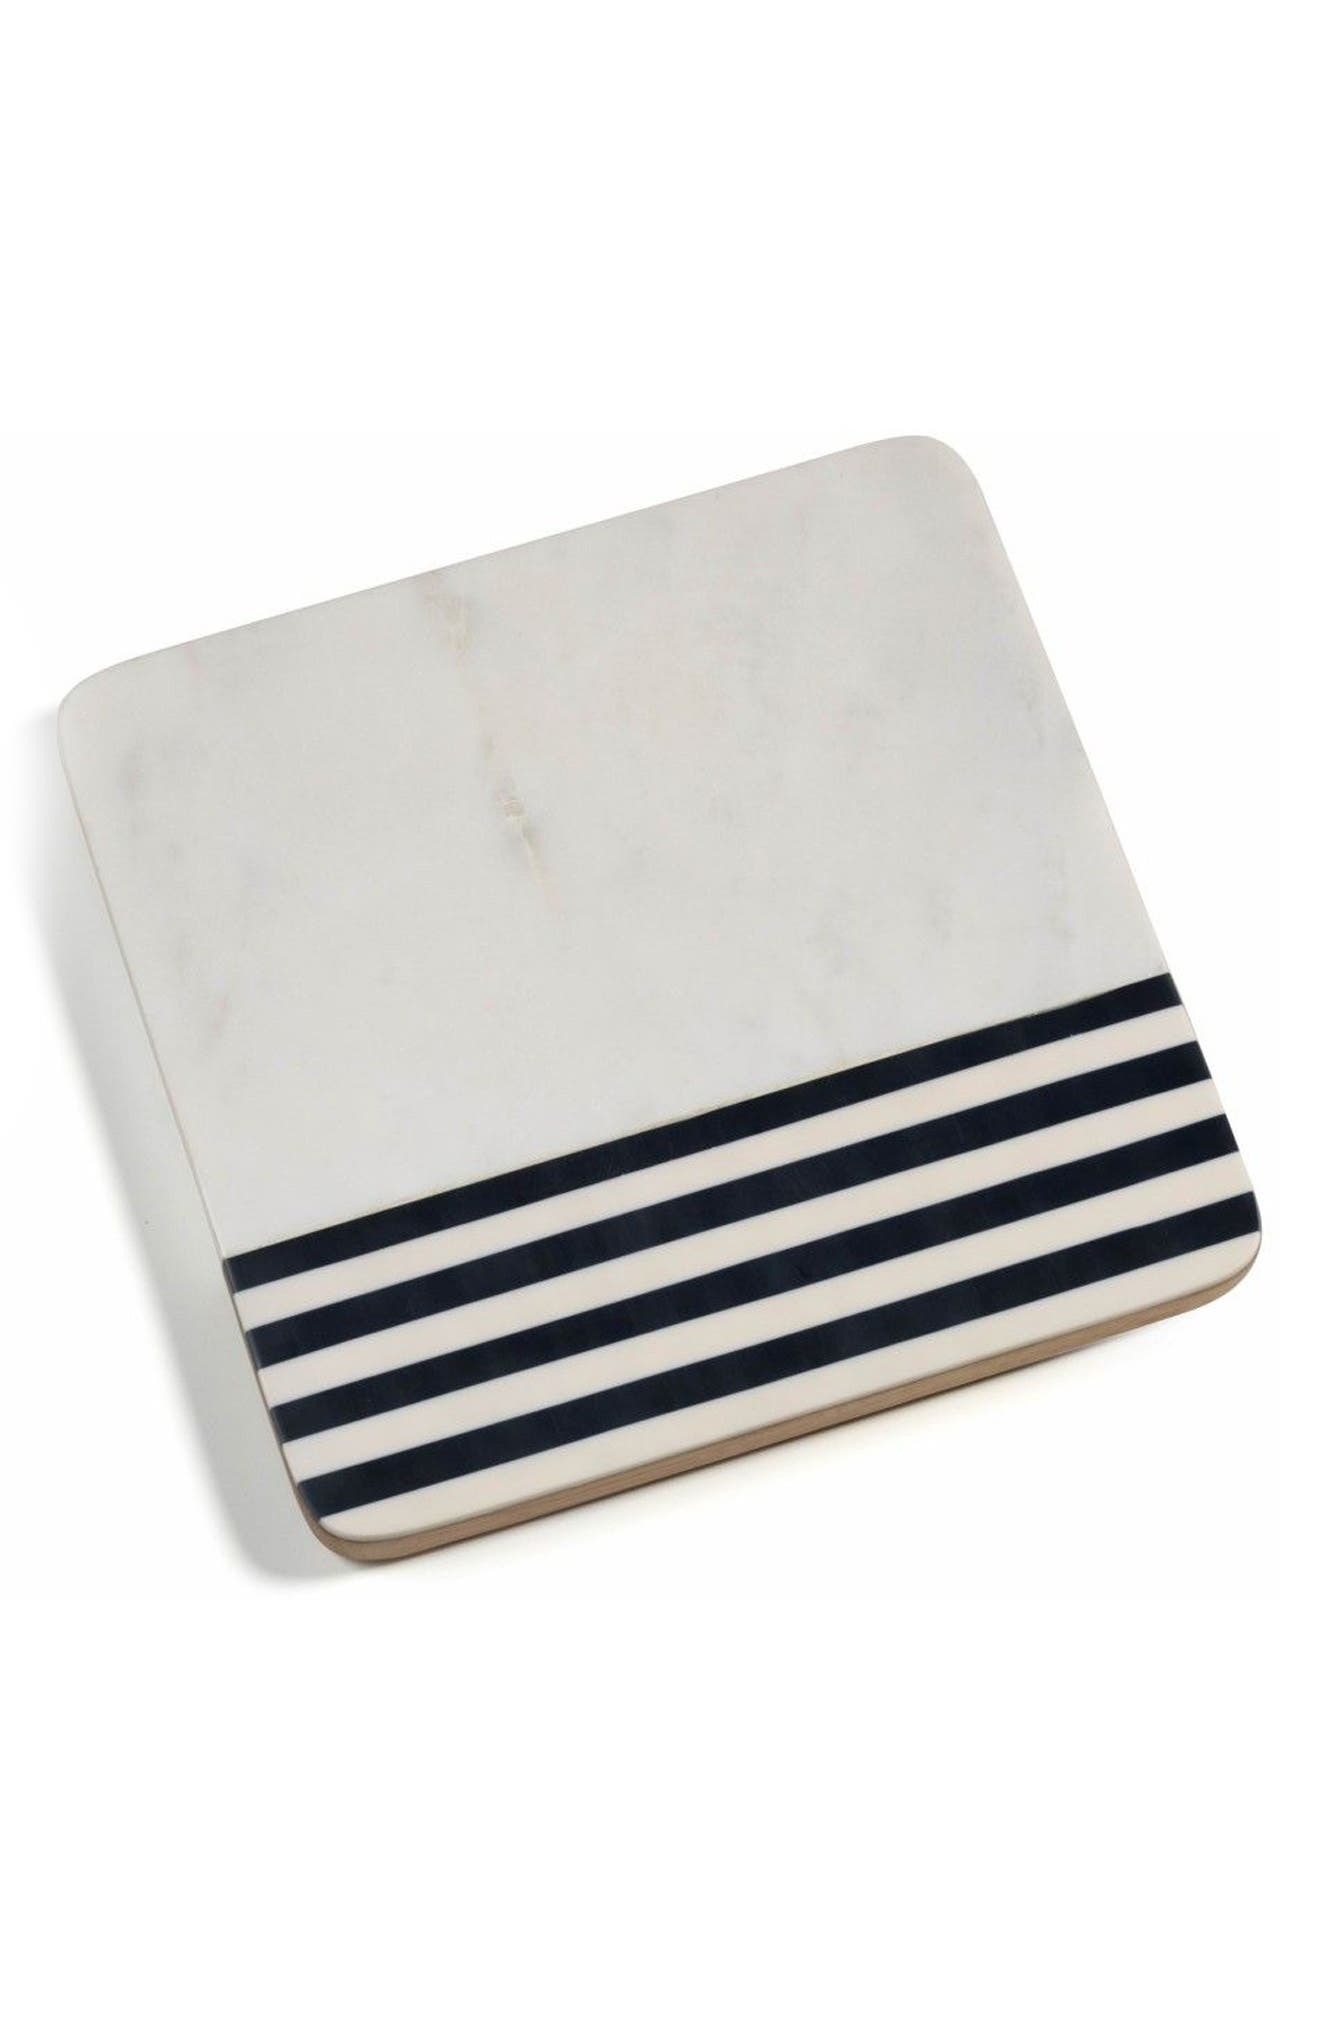 Marine Marble & Wood Cheese Board,                             Main thumbnail 1, color,                             White/ Black